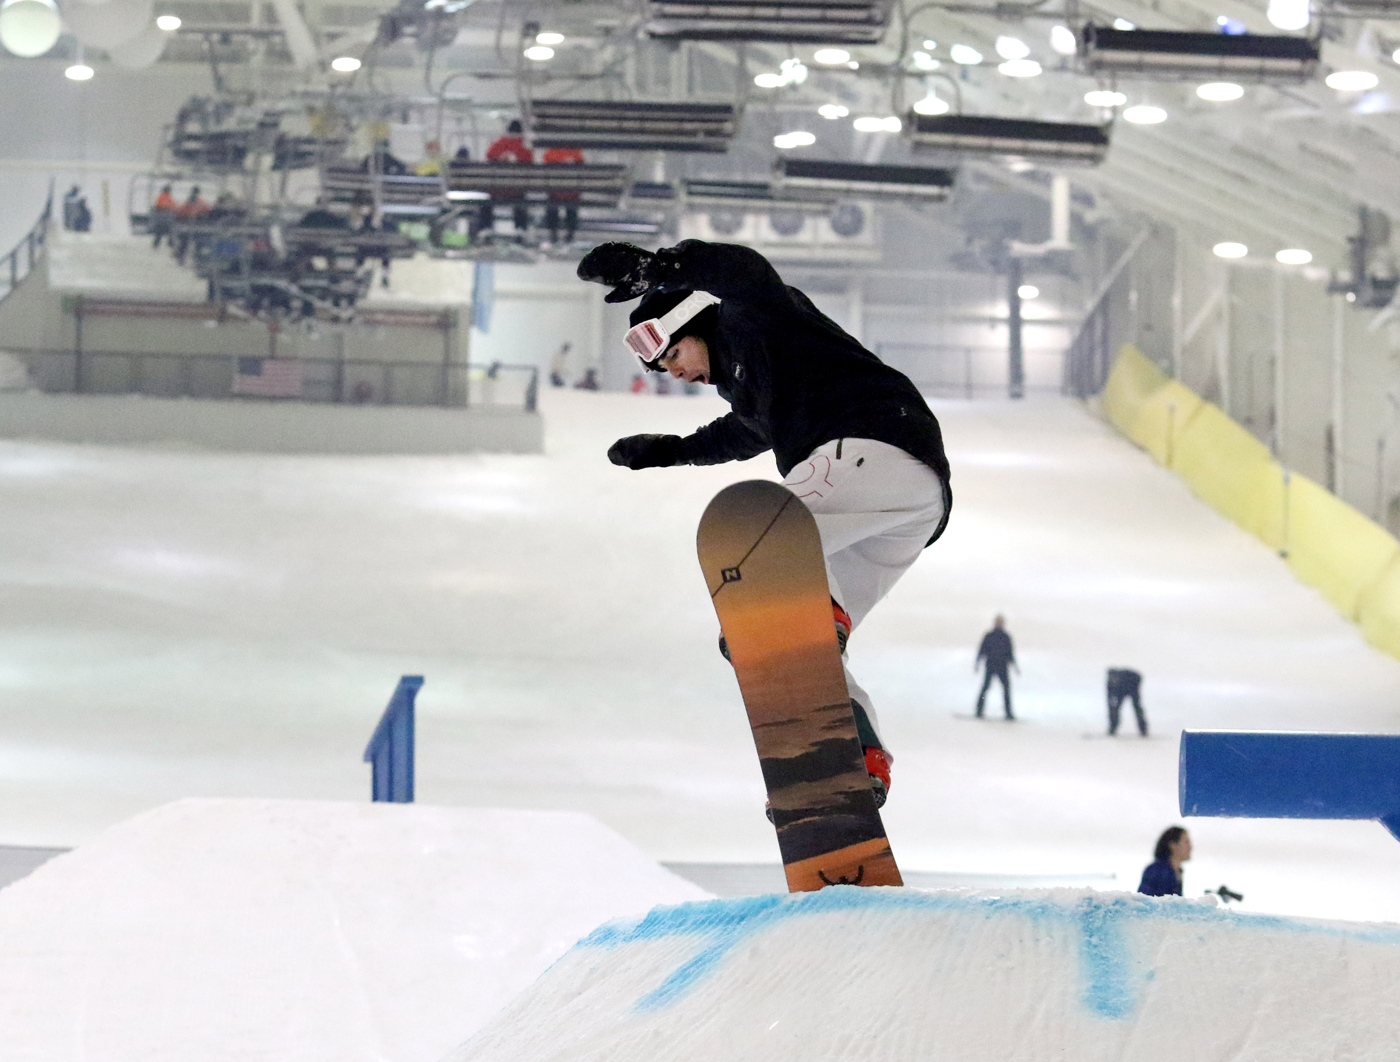 Indoor ski slope at American Dream is open. Here's a first look inside.